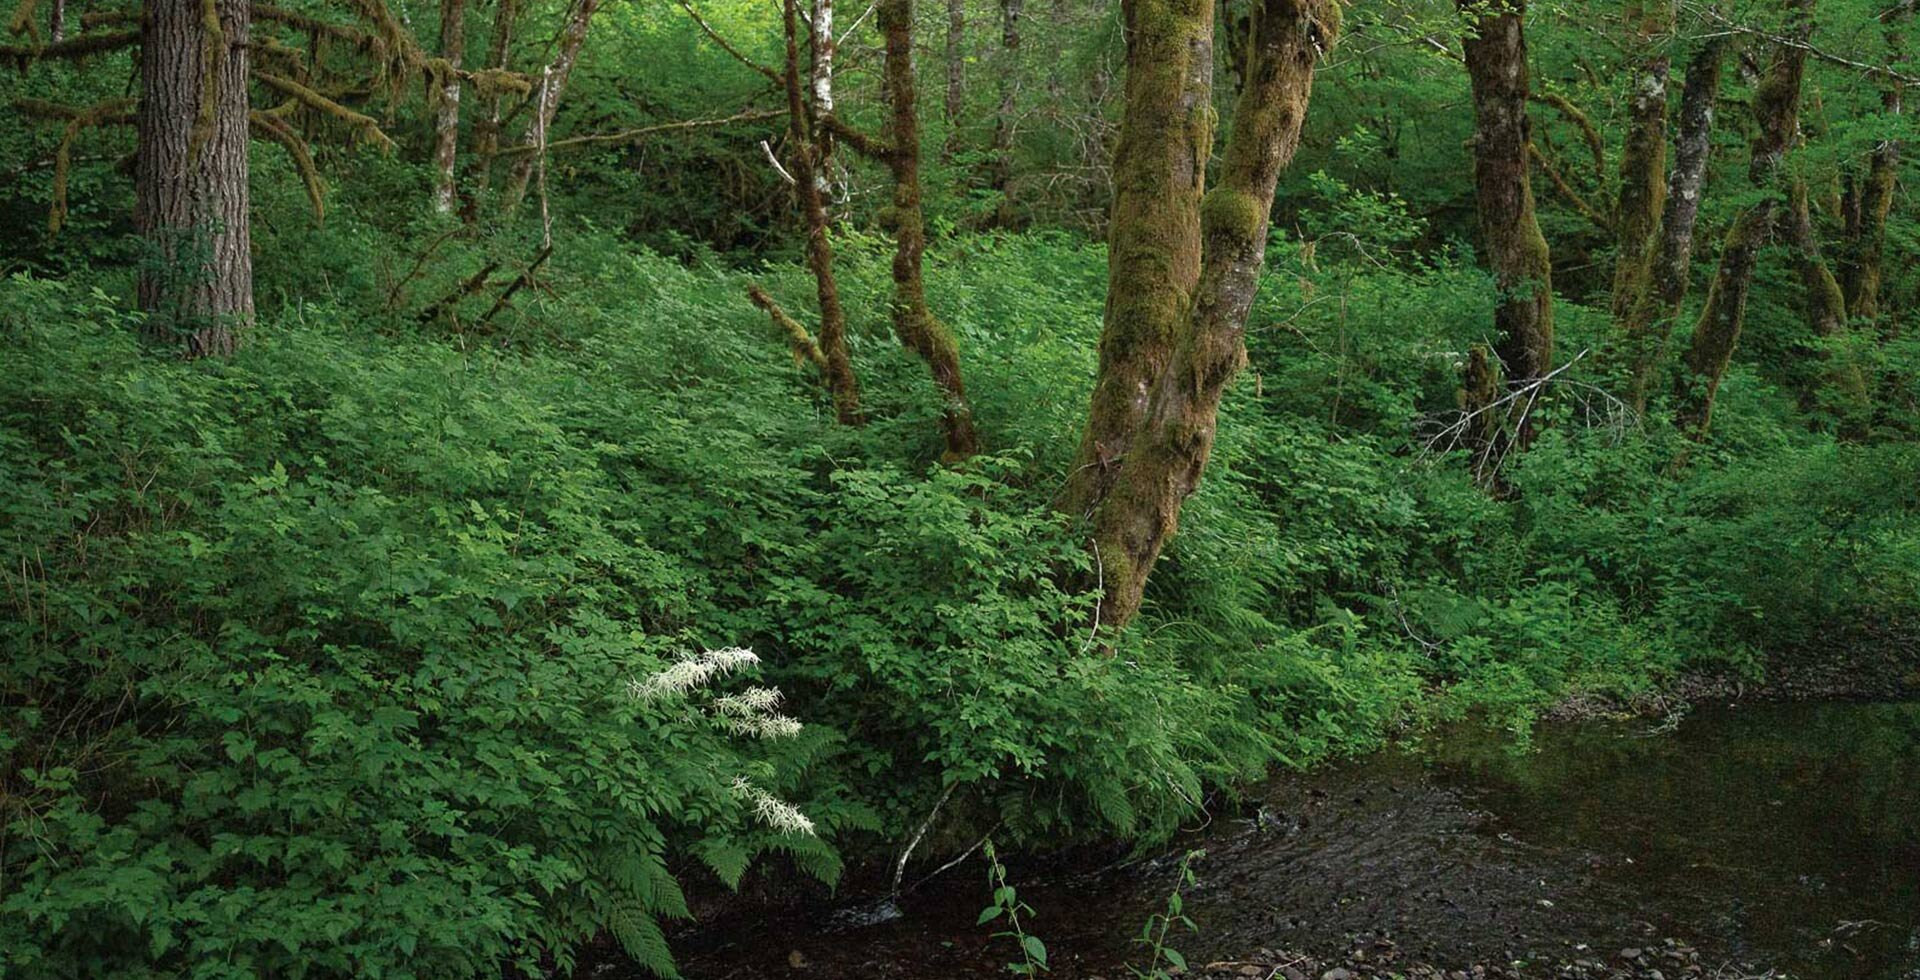 At more than 1,000 acres, the Hyla Woods experimental forestry in northwest Oregon seeks to illuminate ways in which people and forests can coexist sustainably.